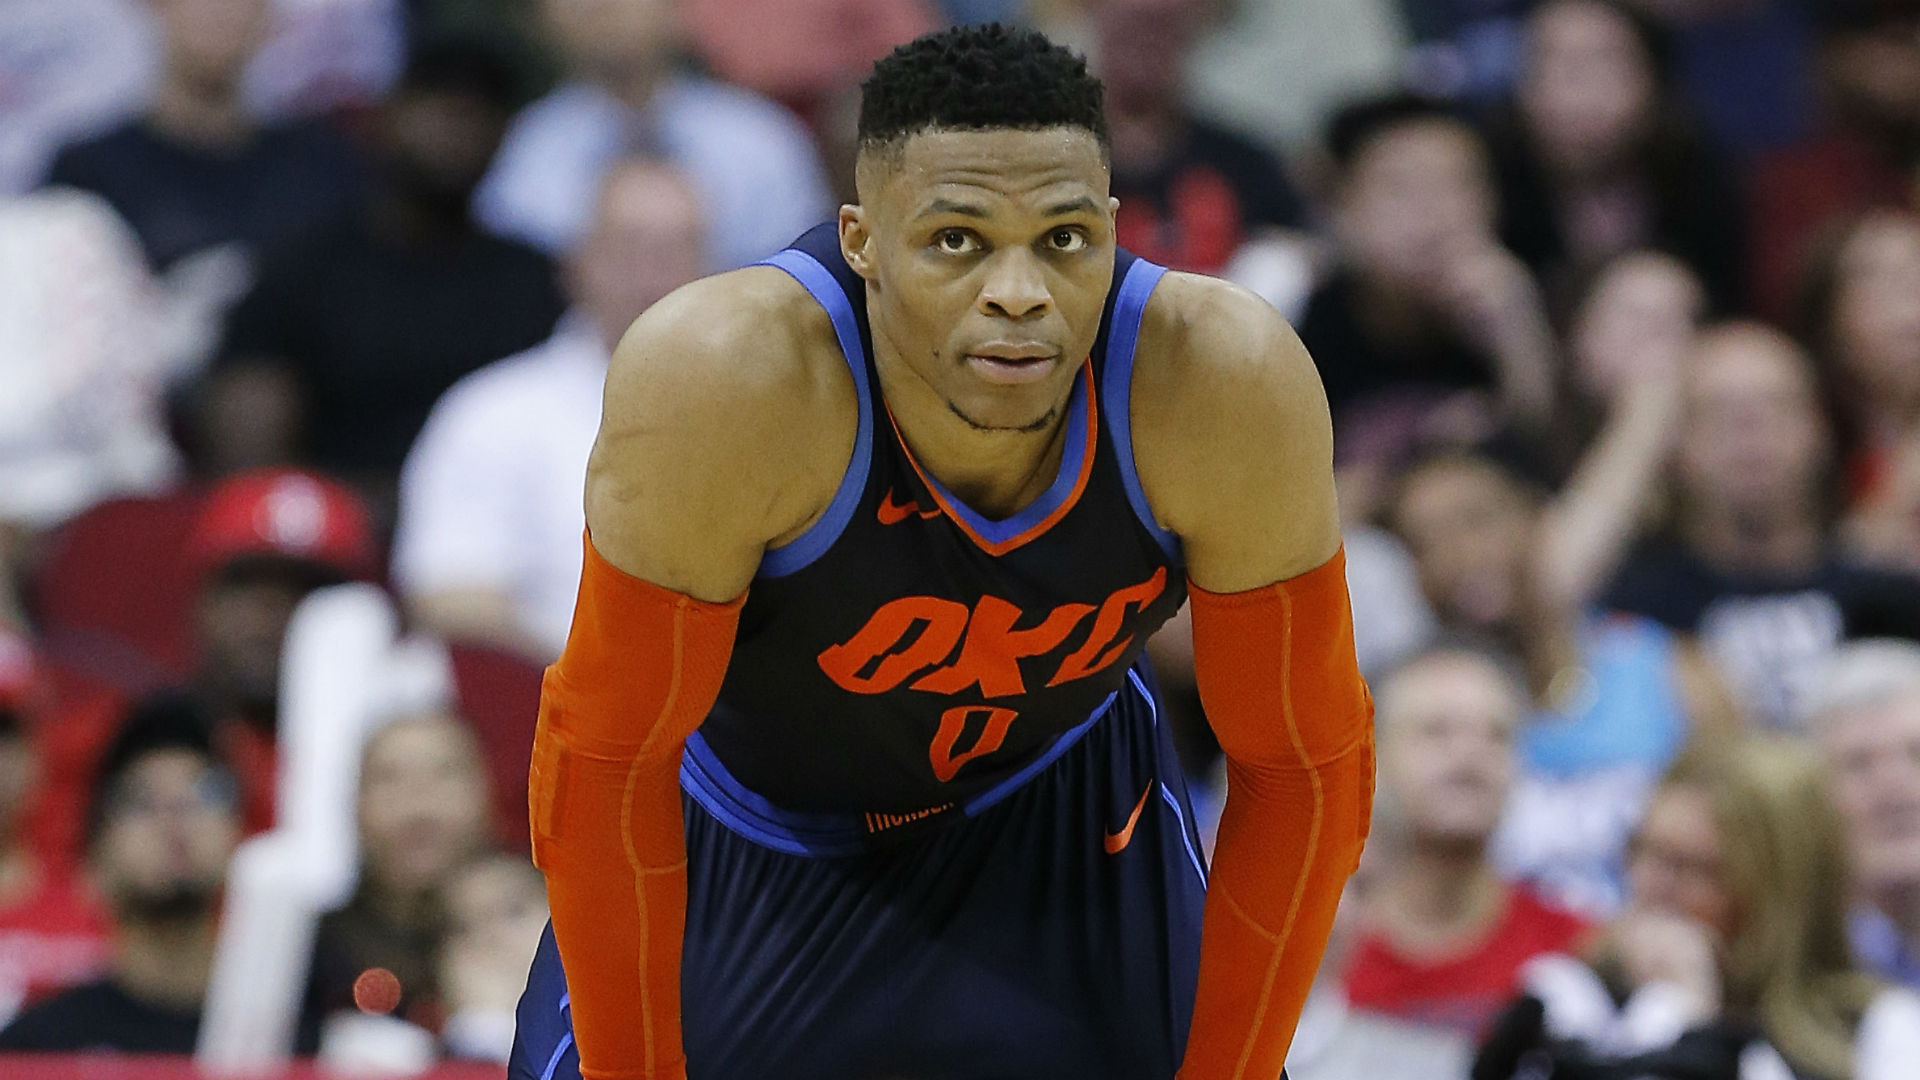 Thunder star Russell Westbrook to serve mandatory 1-game suspension after 16th technical foul